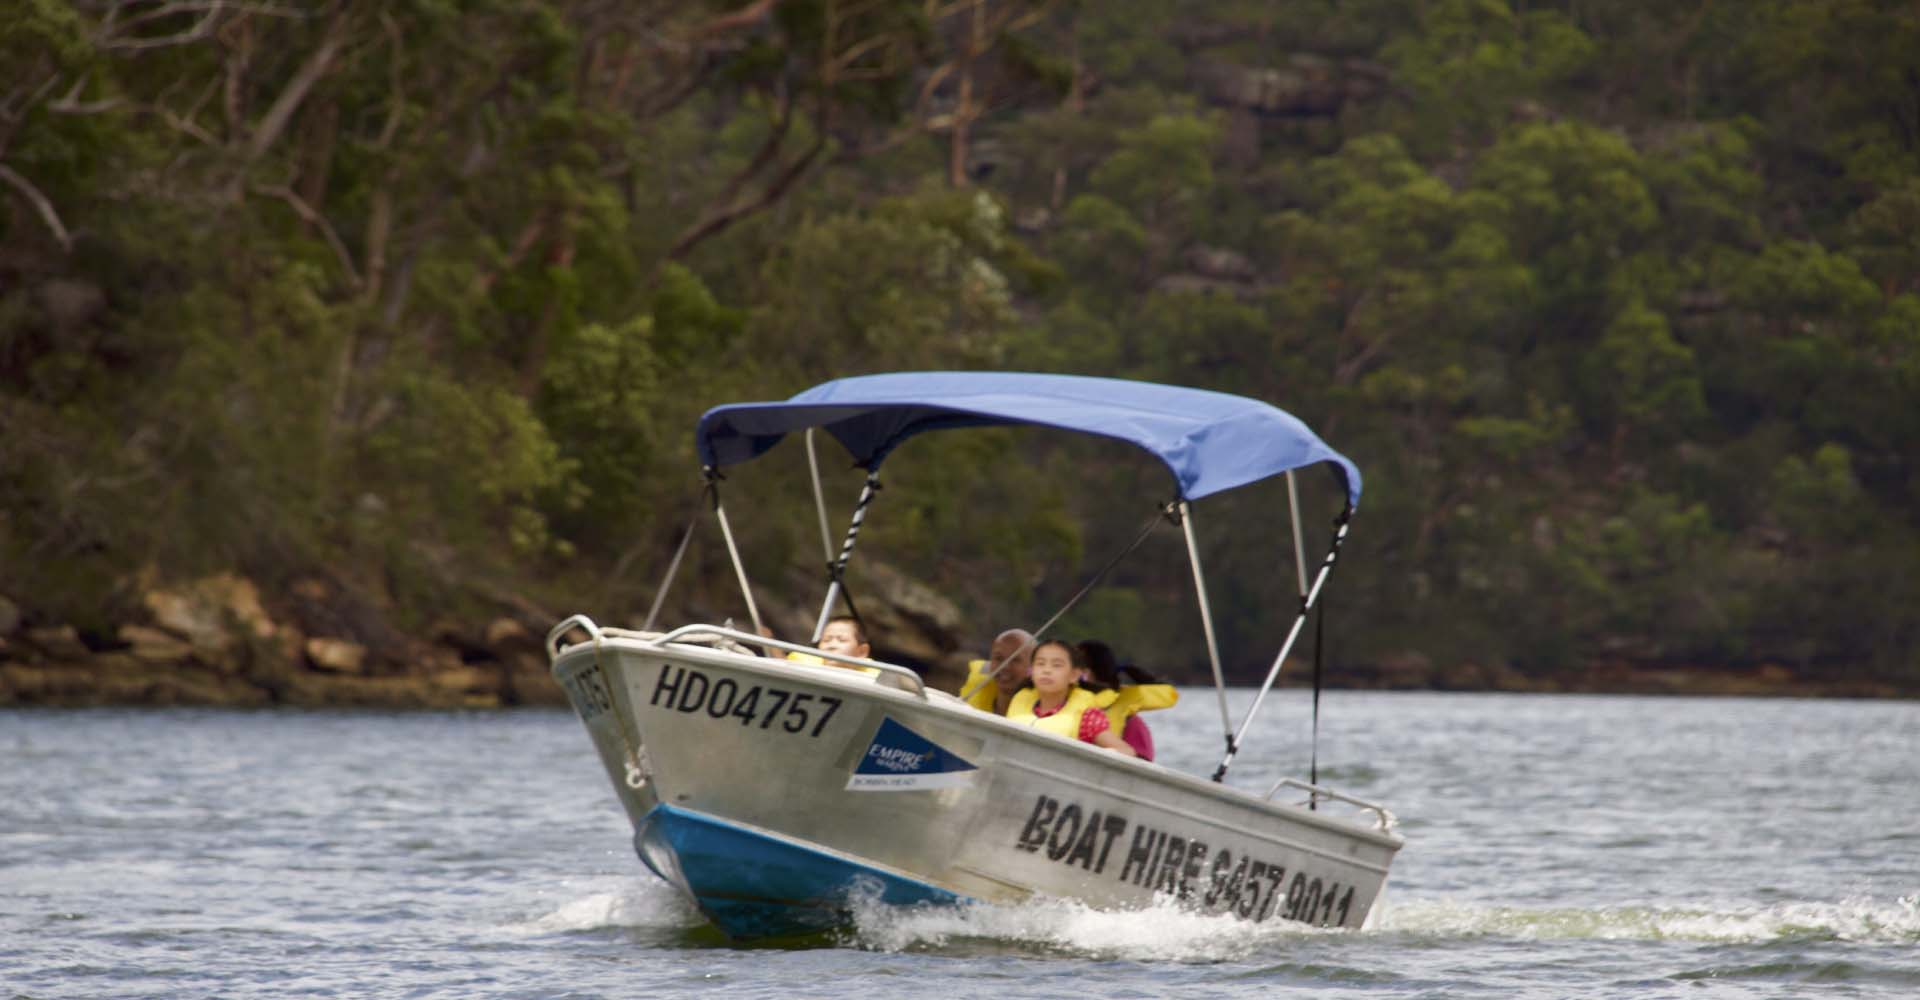 Boat Hire at Empire Marinas Bobbin Head